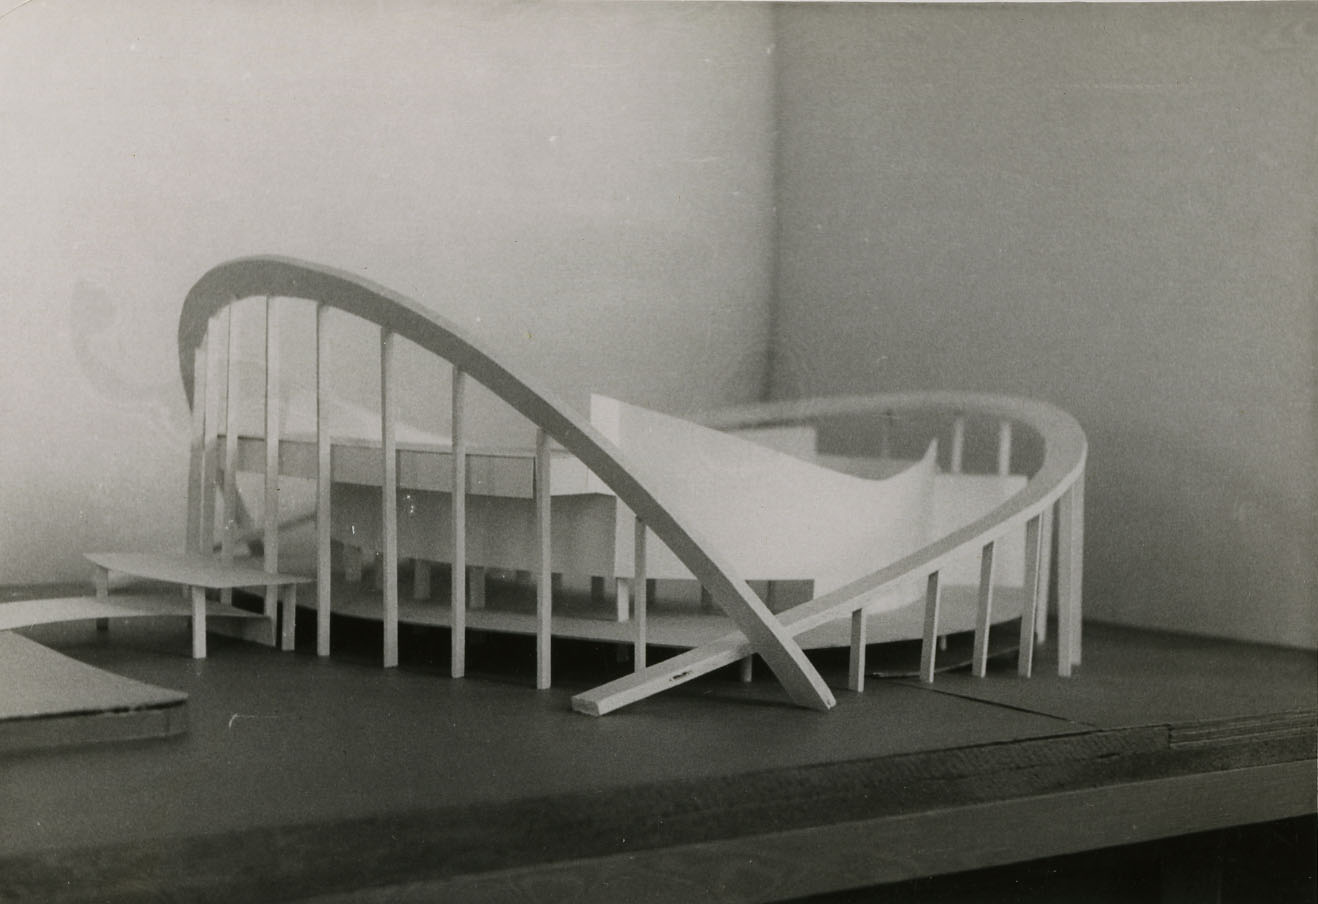 Black and white photograph of architectural model on table, side perspective.